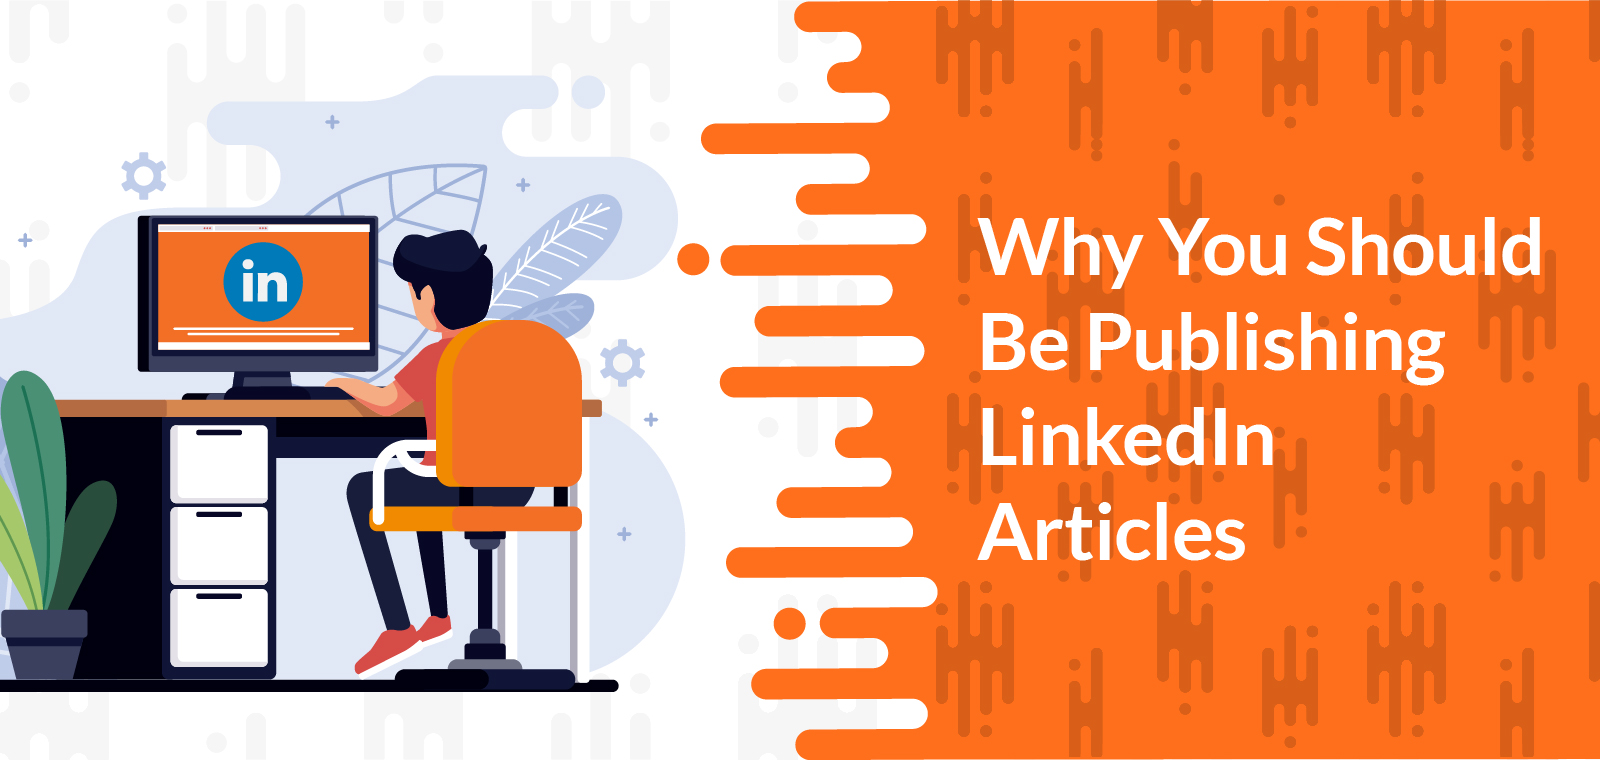 Why You Should Be Publishing LinkedIn Articles